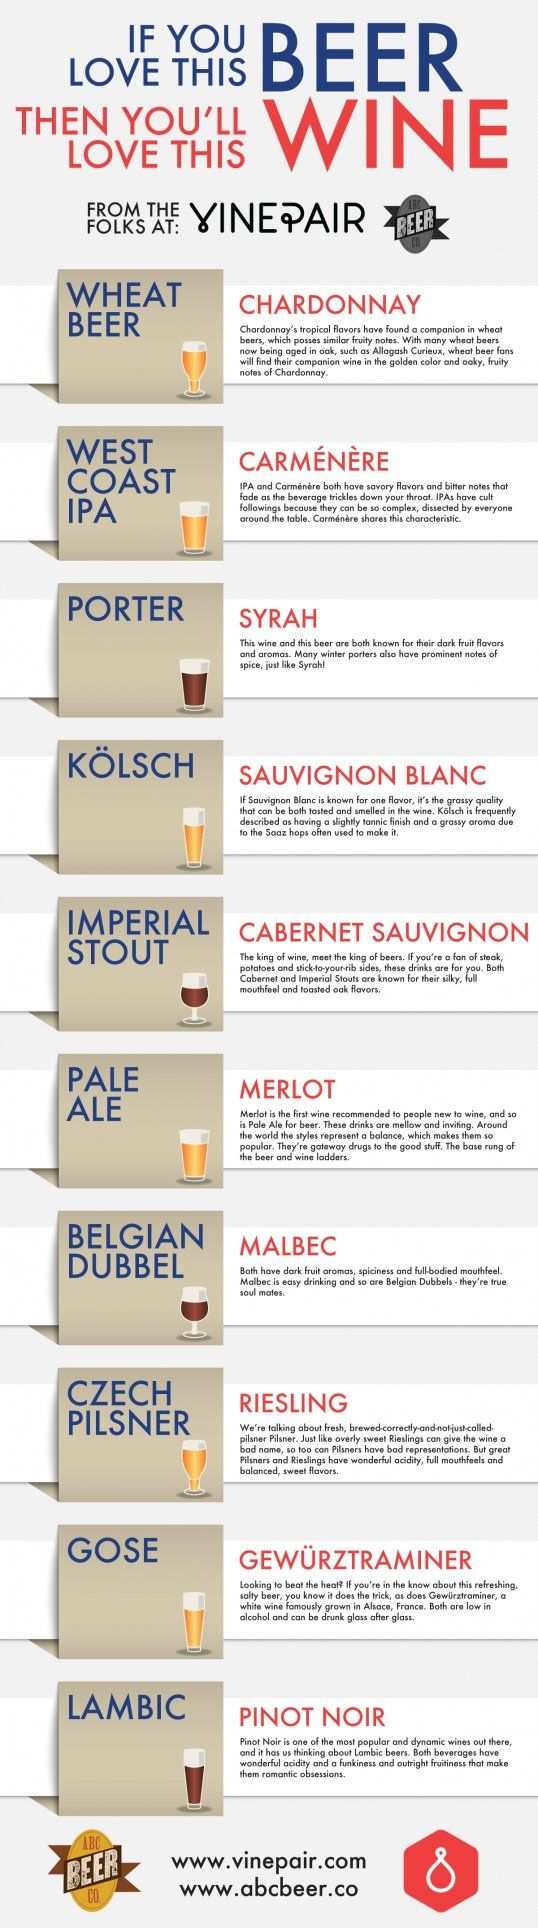 wine beer pairing infographic  #craftbeer #beer